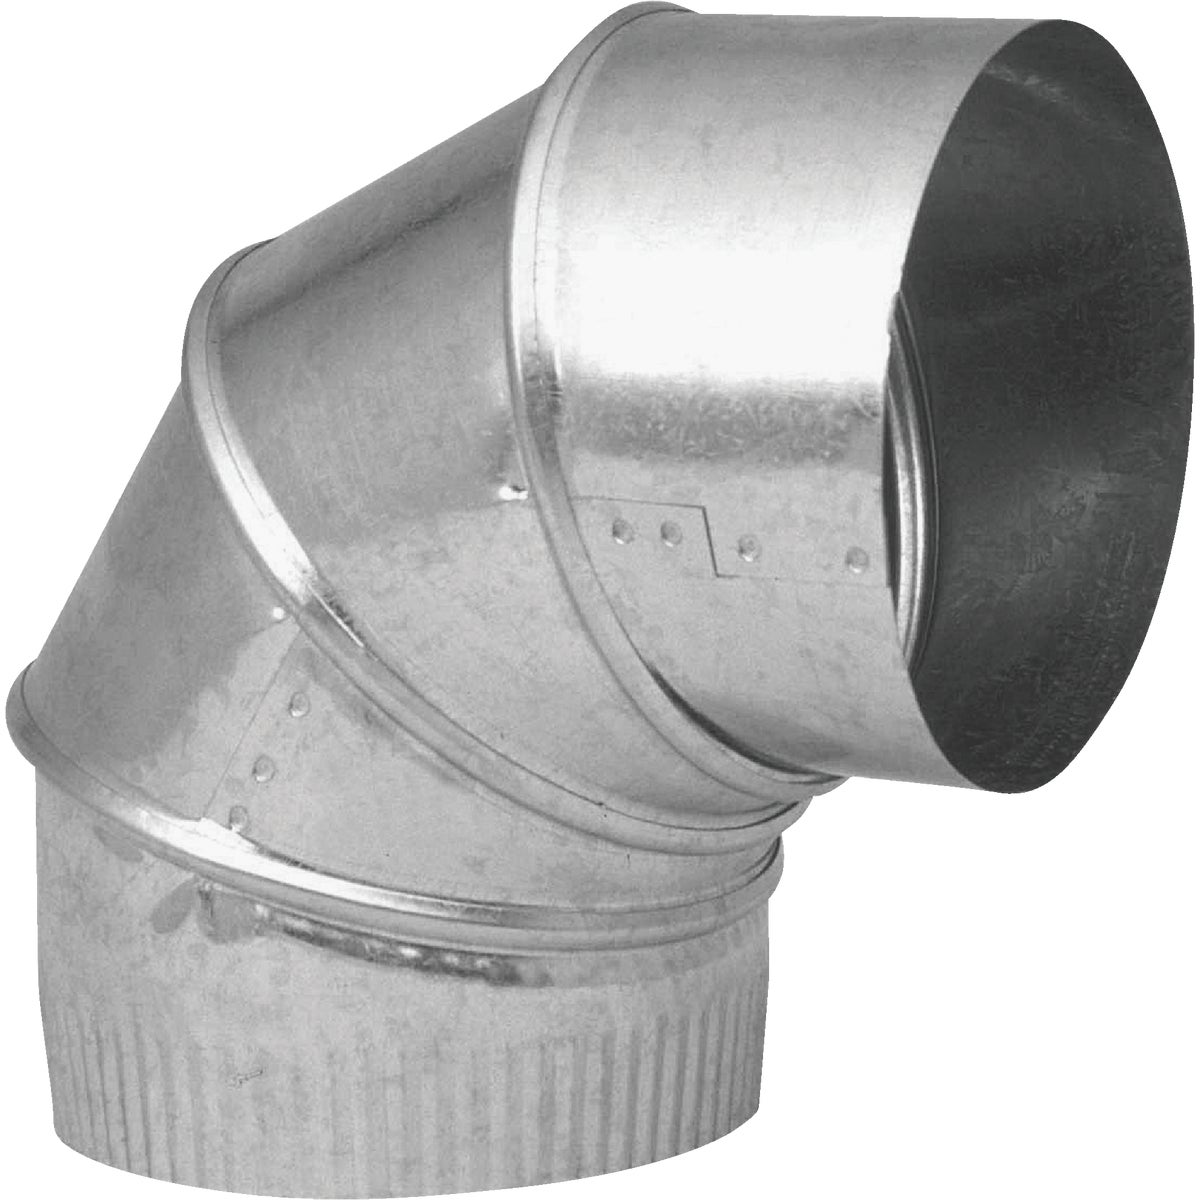 "10"" 28GA GALV ADJ ELBOW - GV0309 by Imperial Mfg Group"